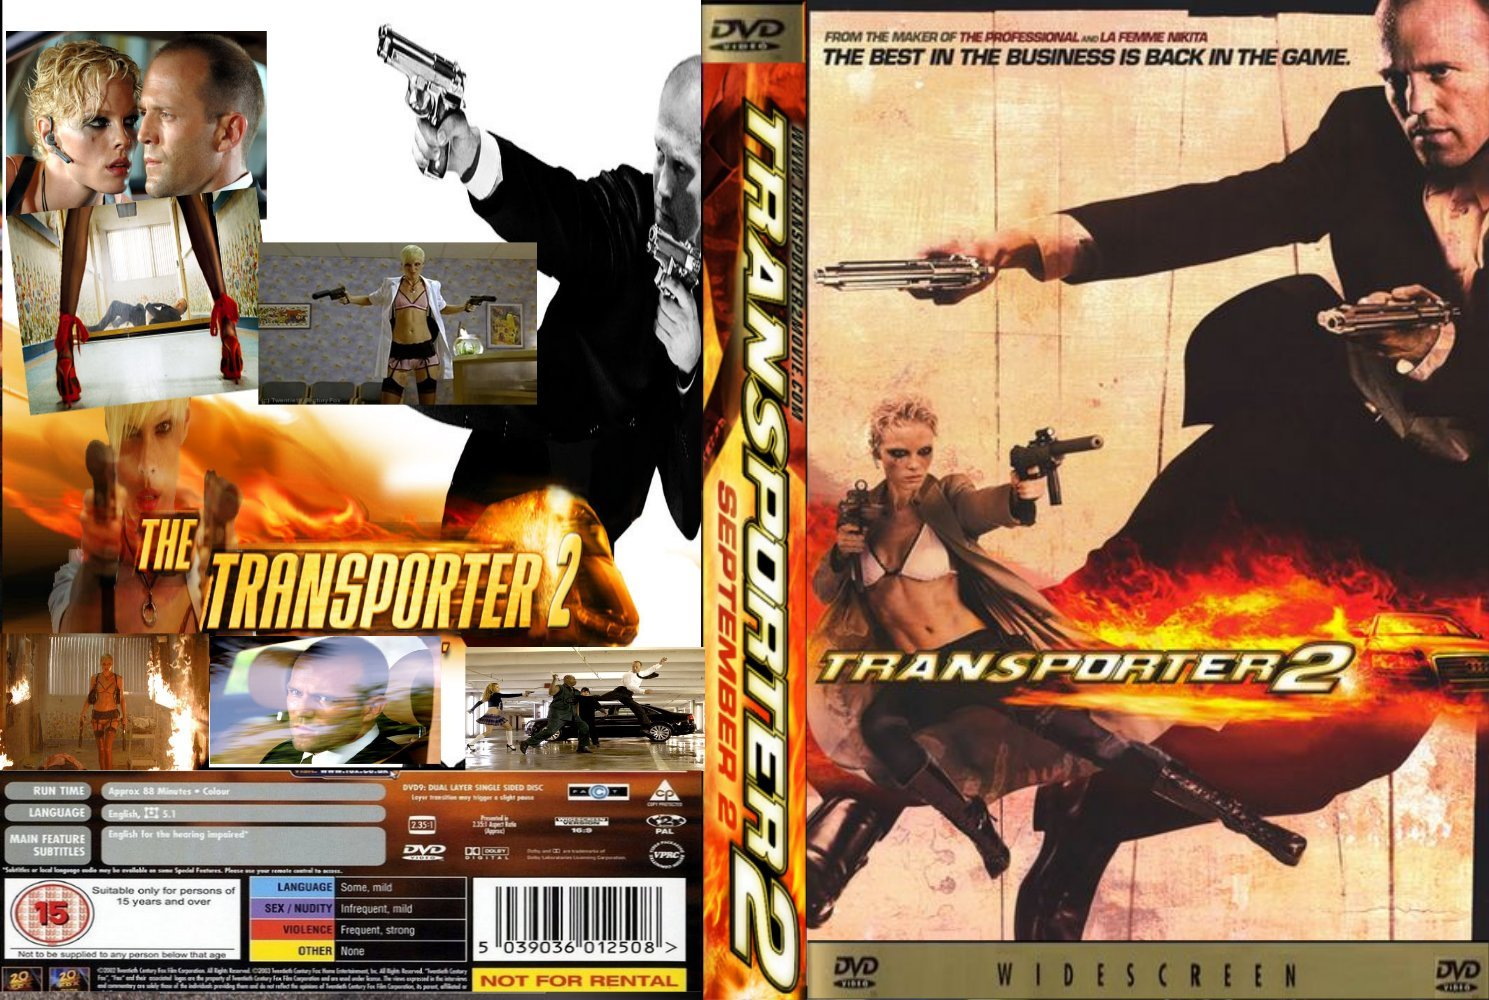 Transporter 2 blu-ray label - DVD Covers & Labels by ... |Transporter 2 Dvd Cover